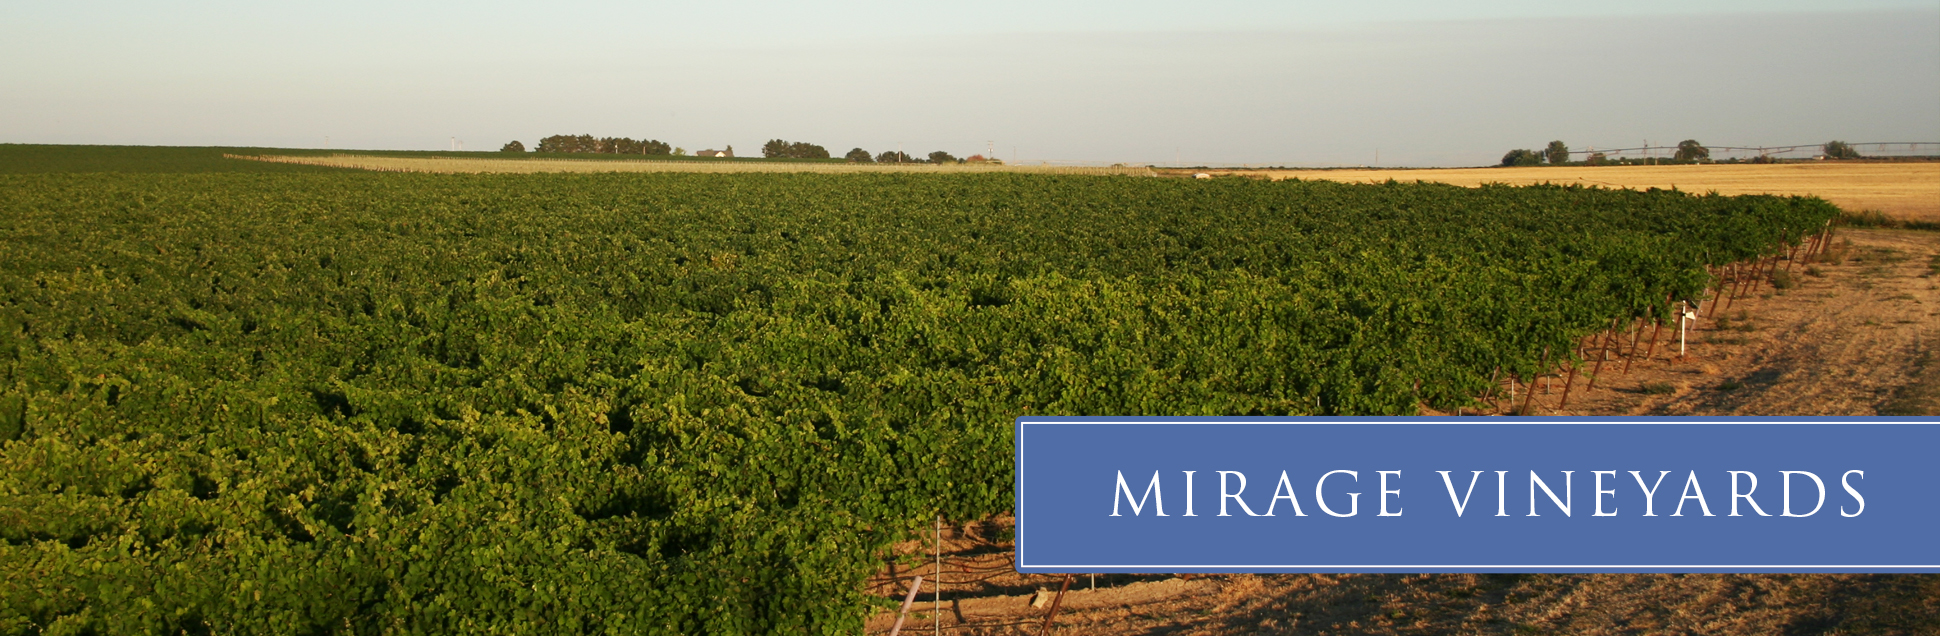 mirage-vineyard-02.jpg